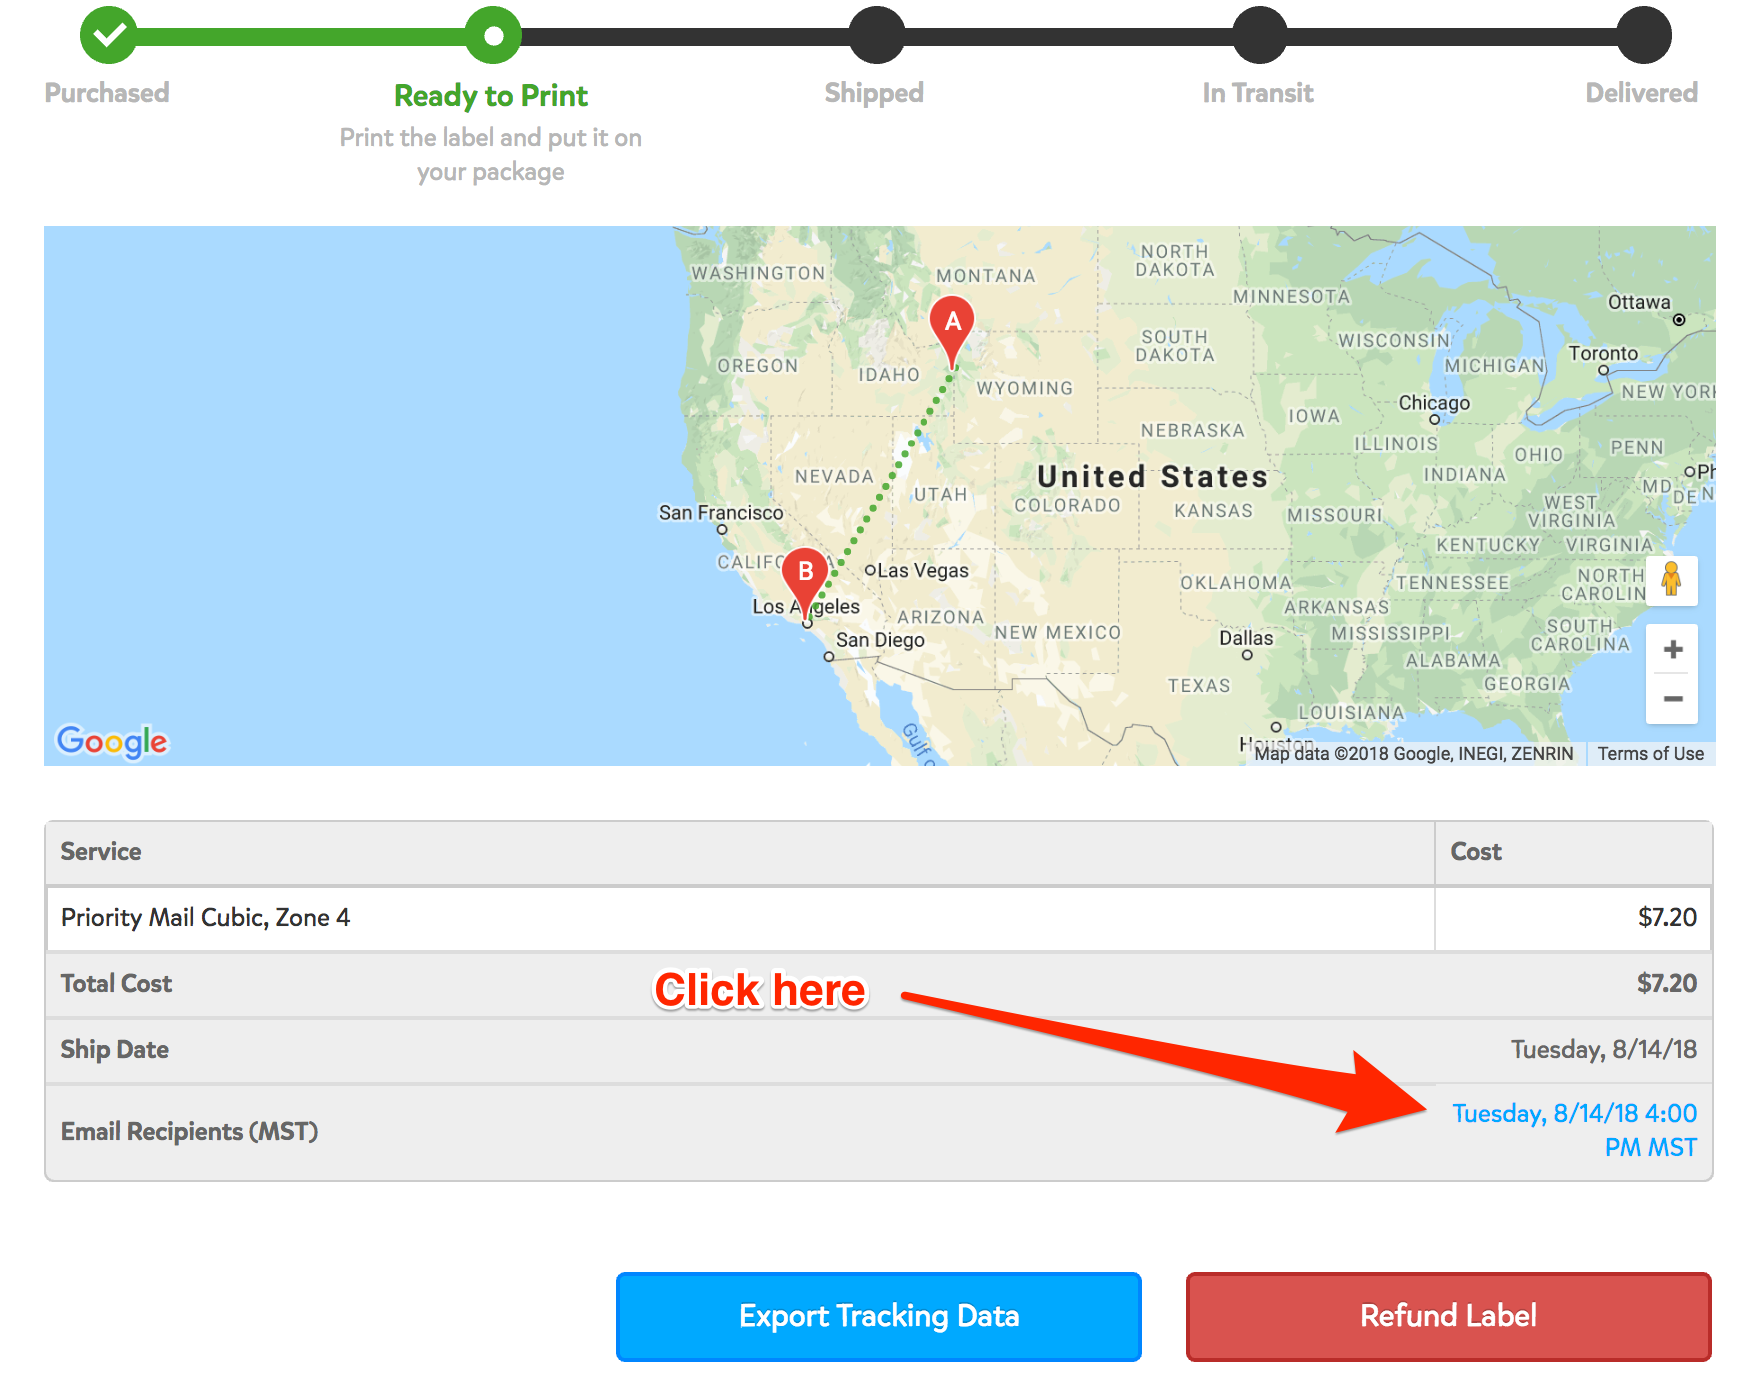 A screenshot showing the bottom of the Shipment Details page. Towards the bottom right corner above the red 'Refund Label' button, there's a time stamp that shows when your recipient will be emailed the tracking email. If you click this time stamp, you can change the time that they will receive the email.